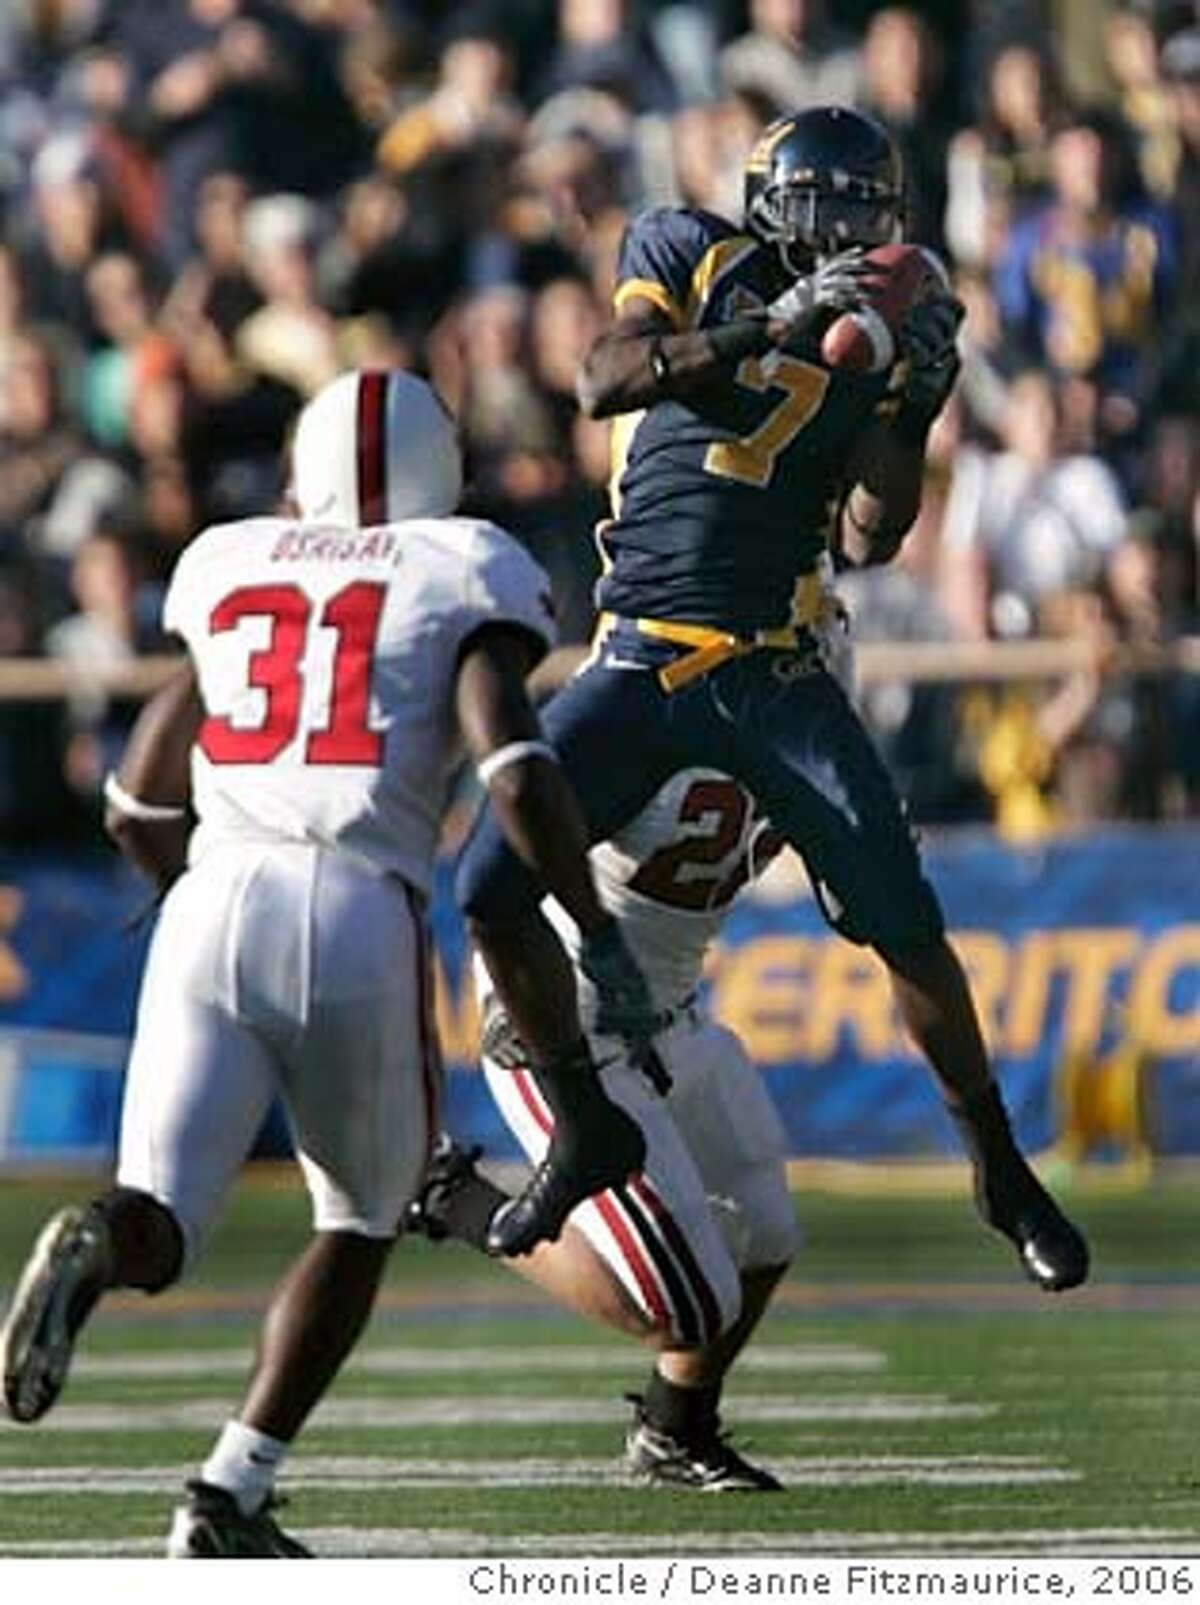 biggame_0958_df.jpg Lavelle Hawkins makes a catch and runs for yardage. The California Golden Bears play the Stanford Cardinal at Memorial Stadium in the annual